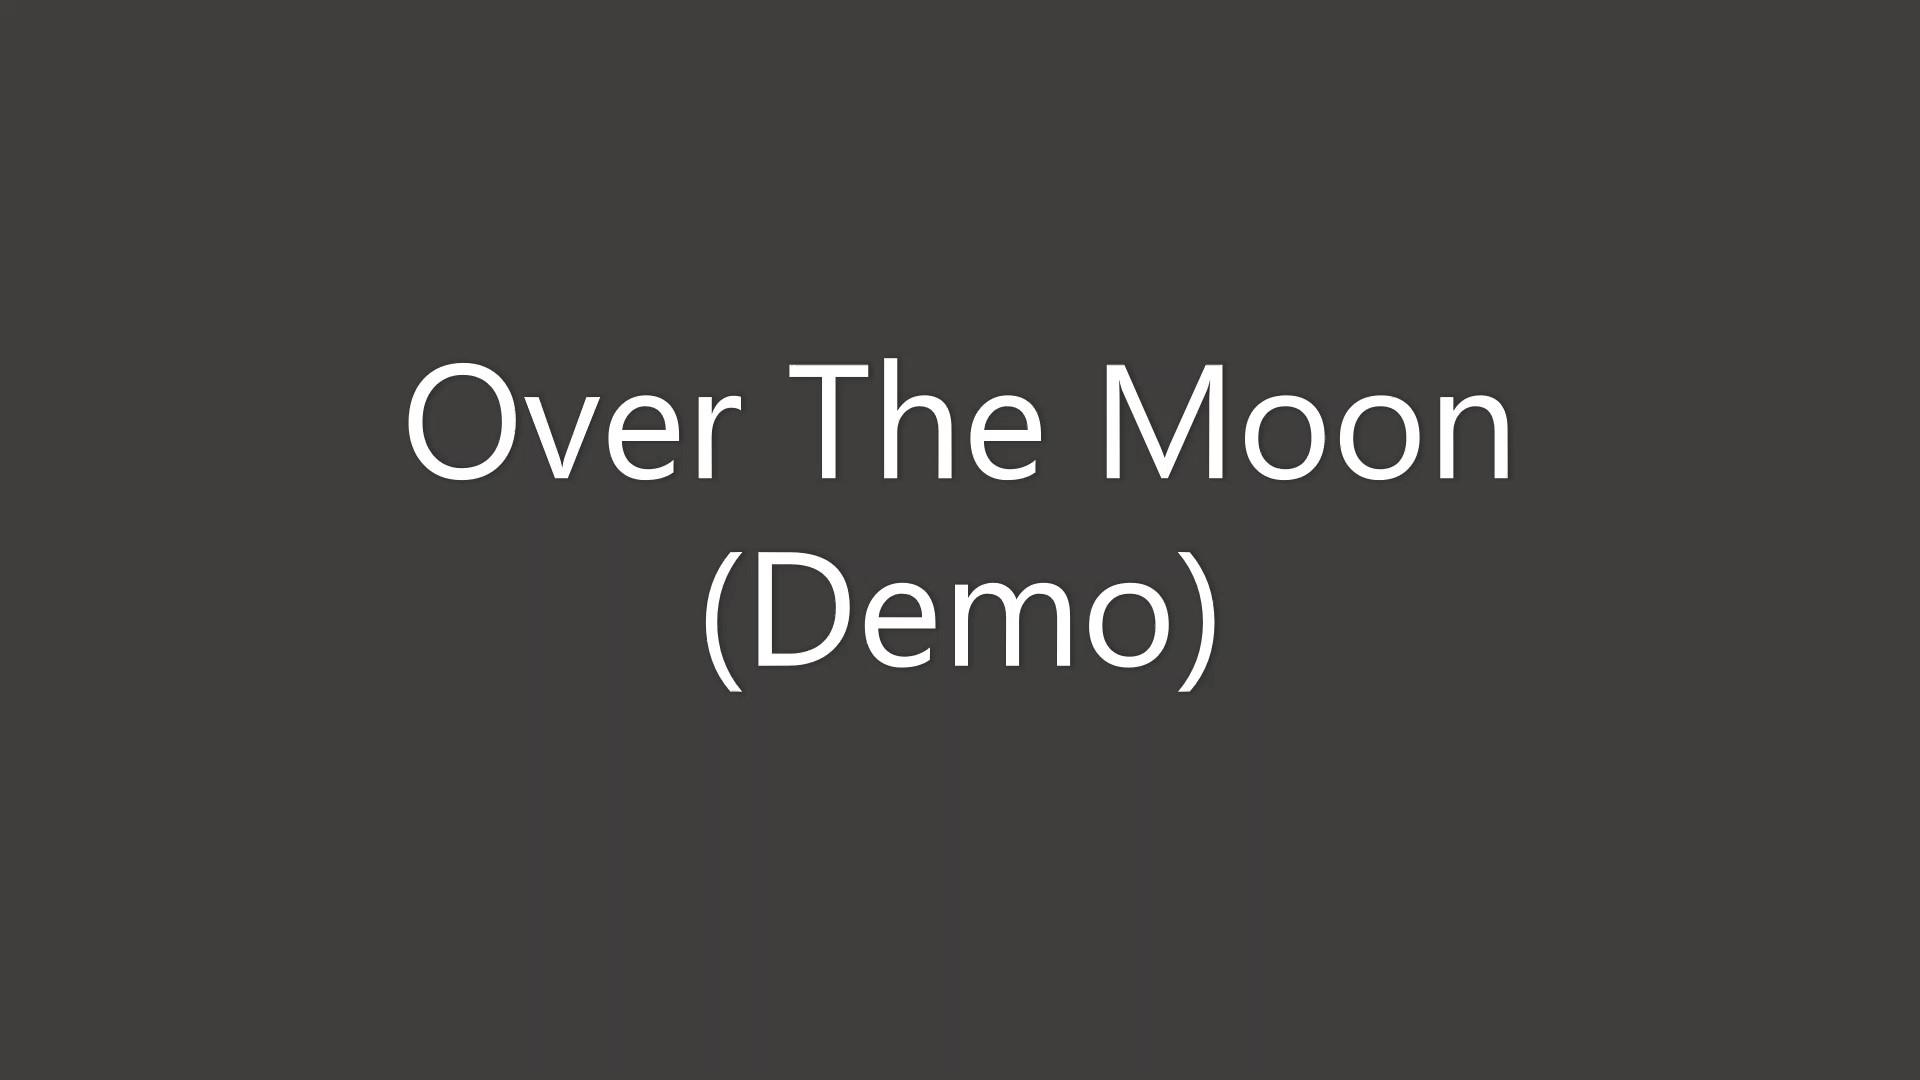 Over The Moon Demo